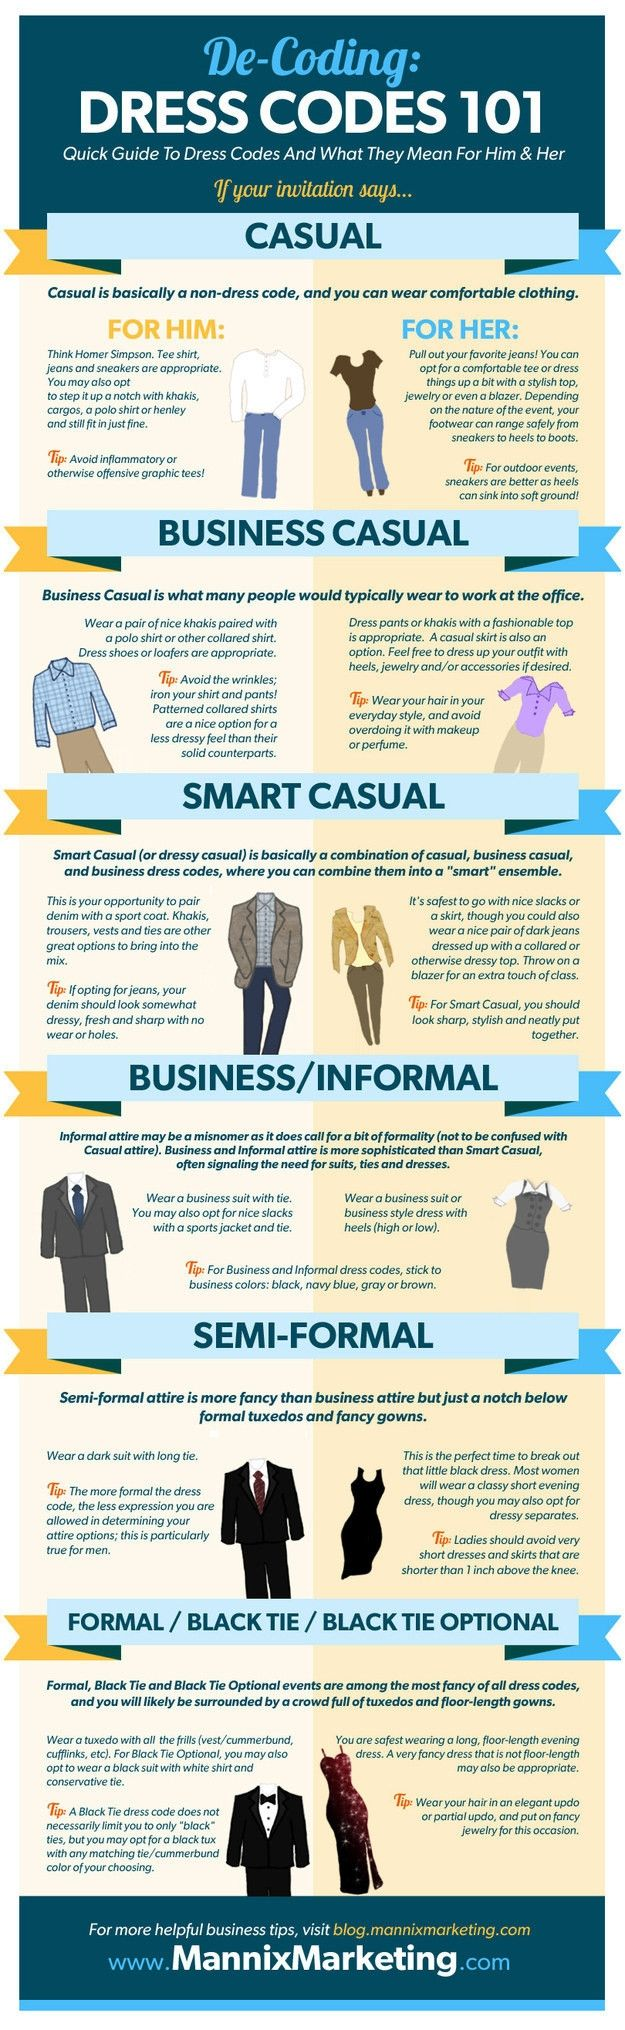 The Art of Dressing Like A Gentleman: 26 Charts Every Man Needs To See - The Roosevelts